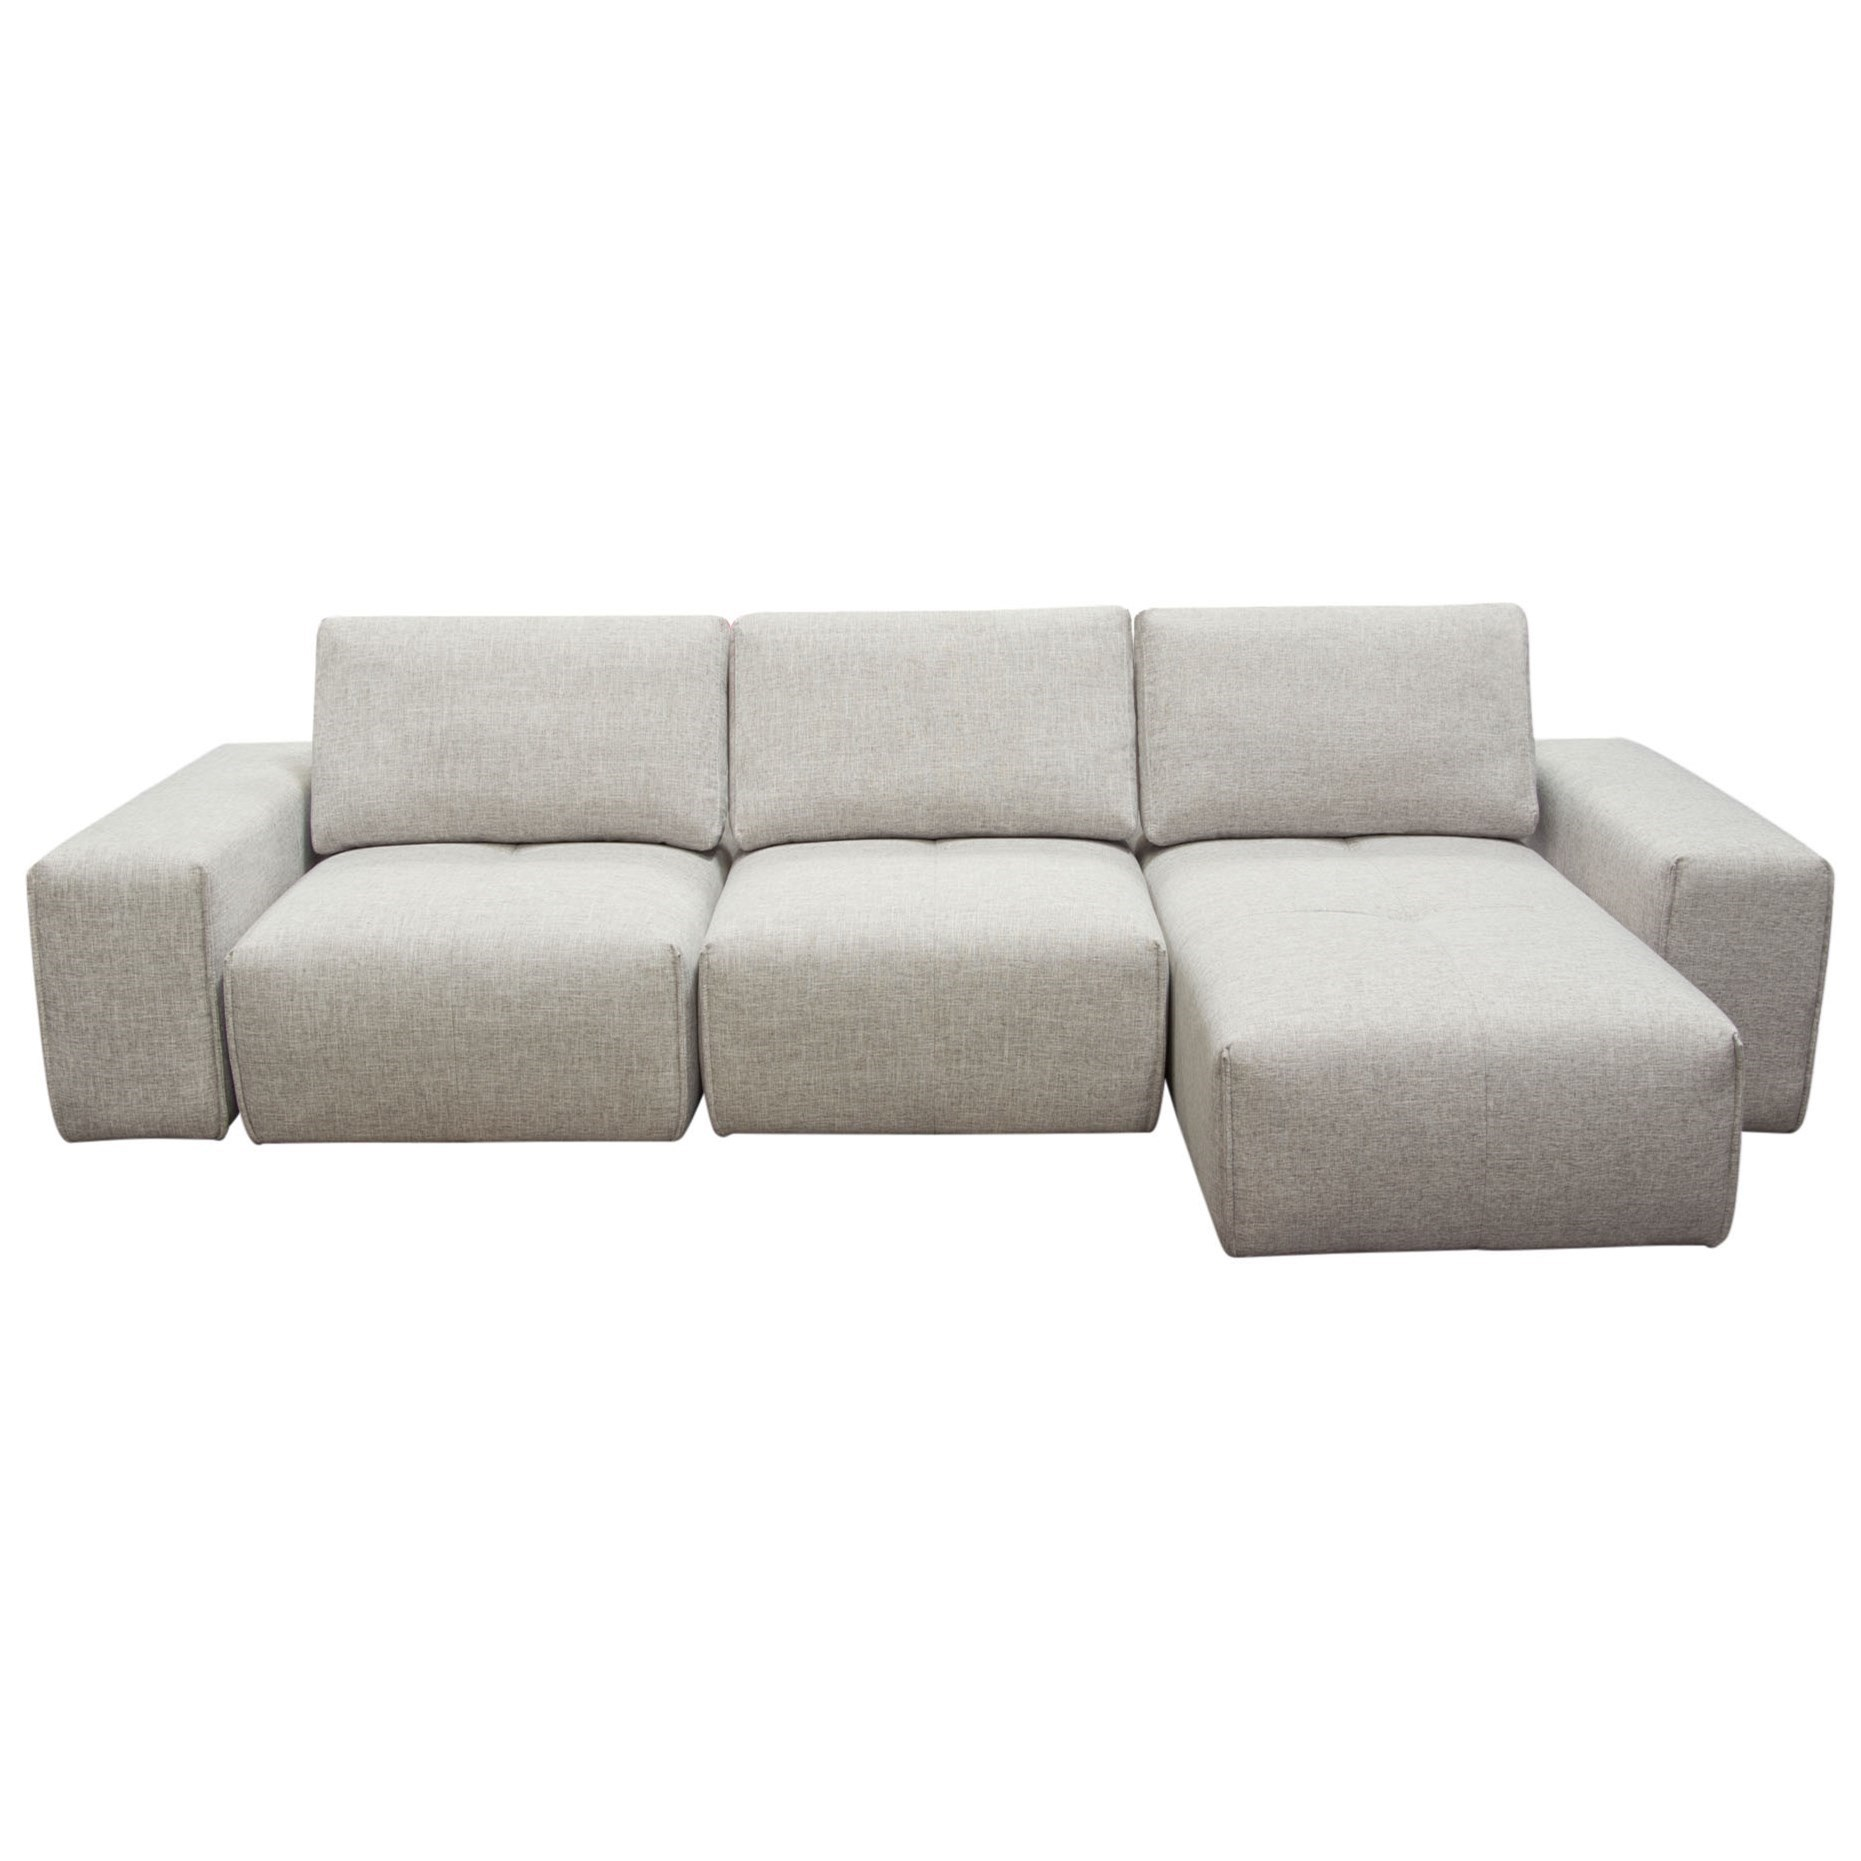 diamond sofa dolce leather outlet uk reviews jazz home the honoroak